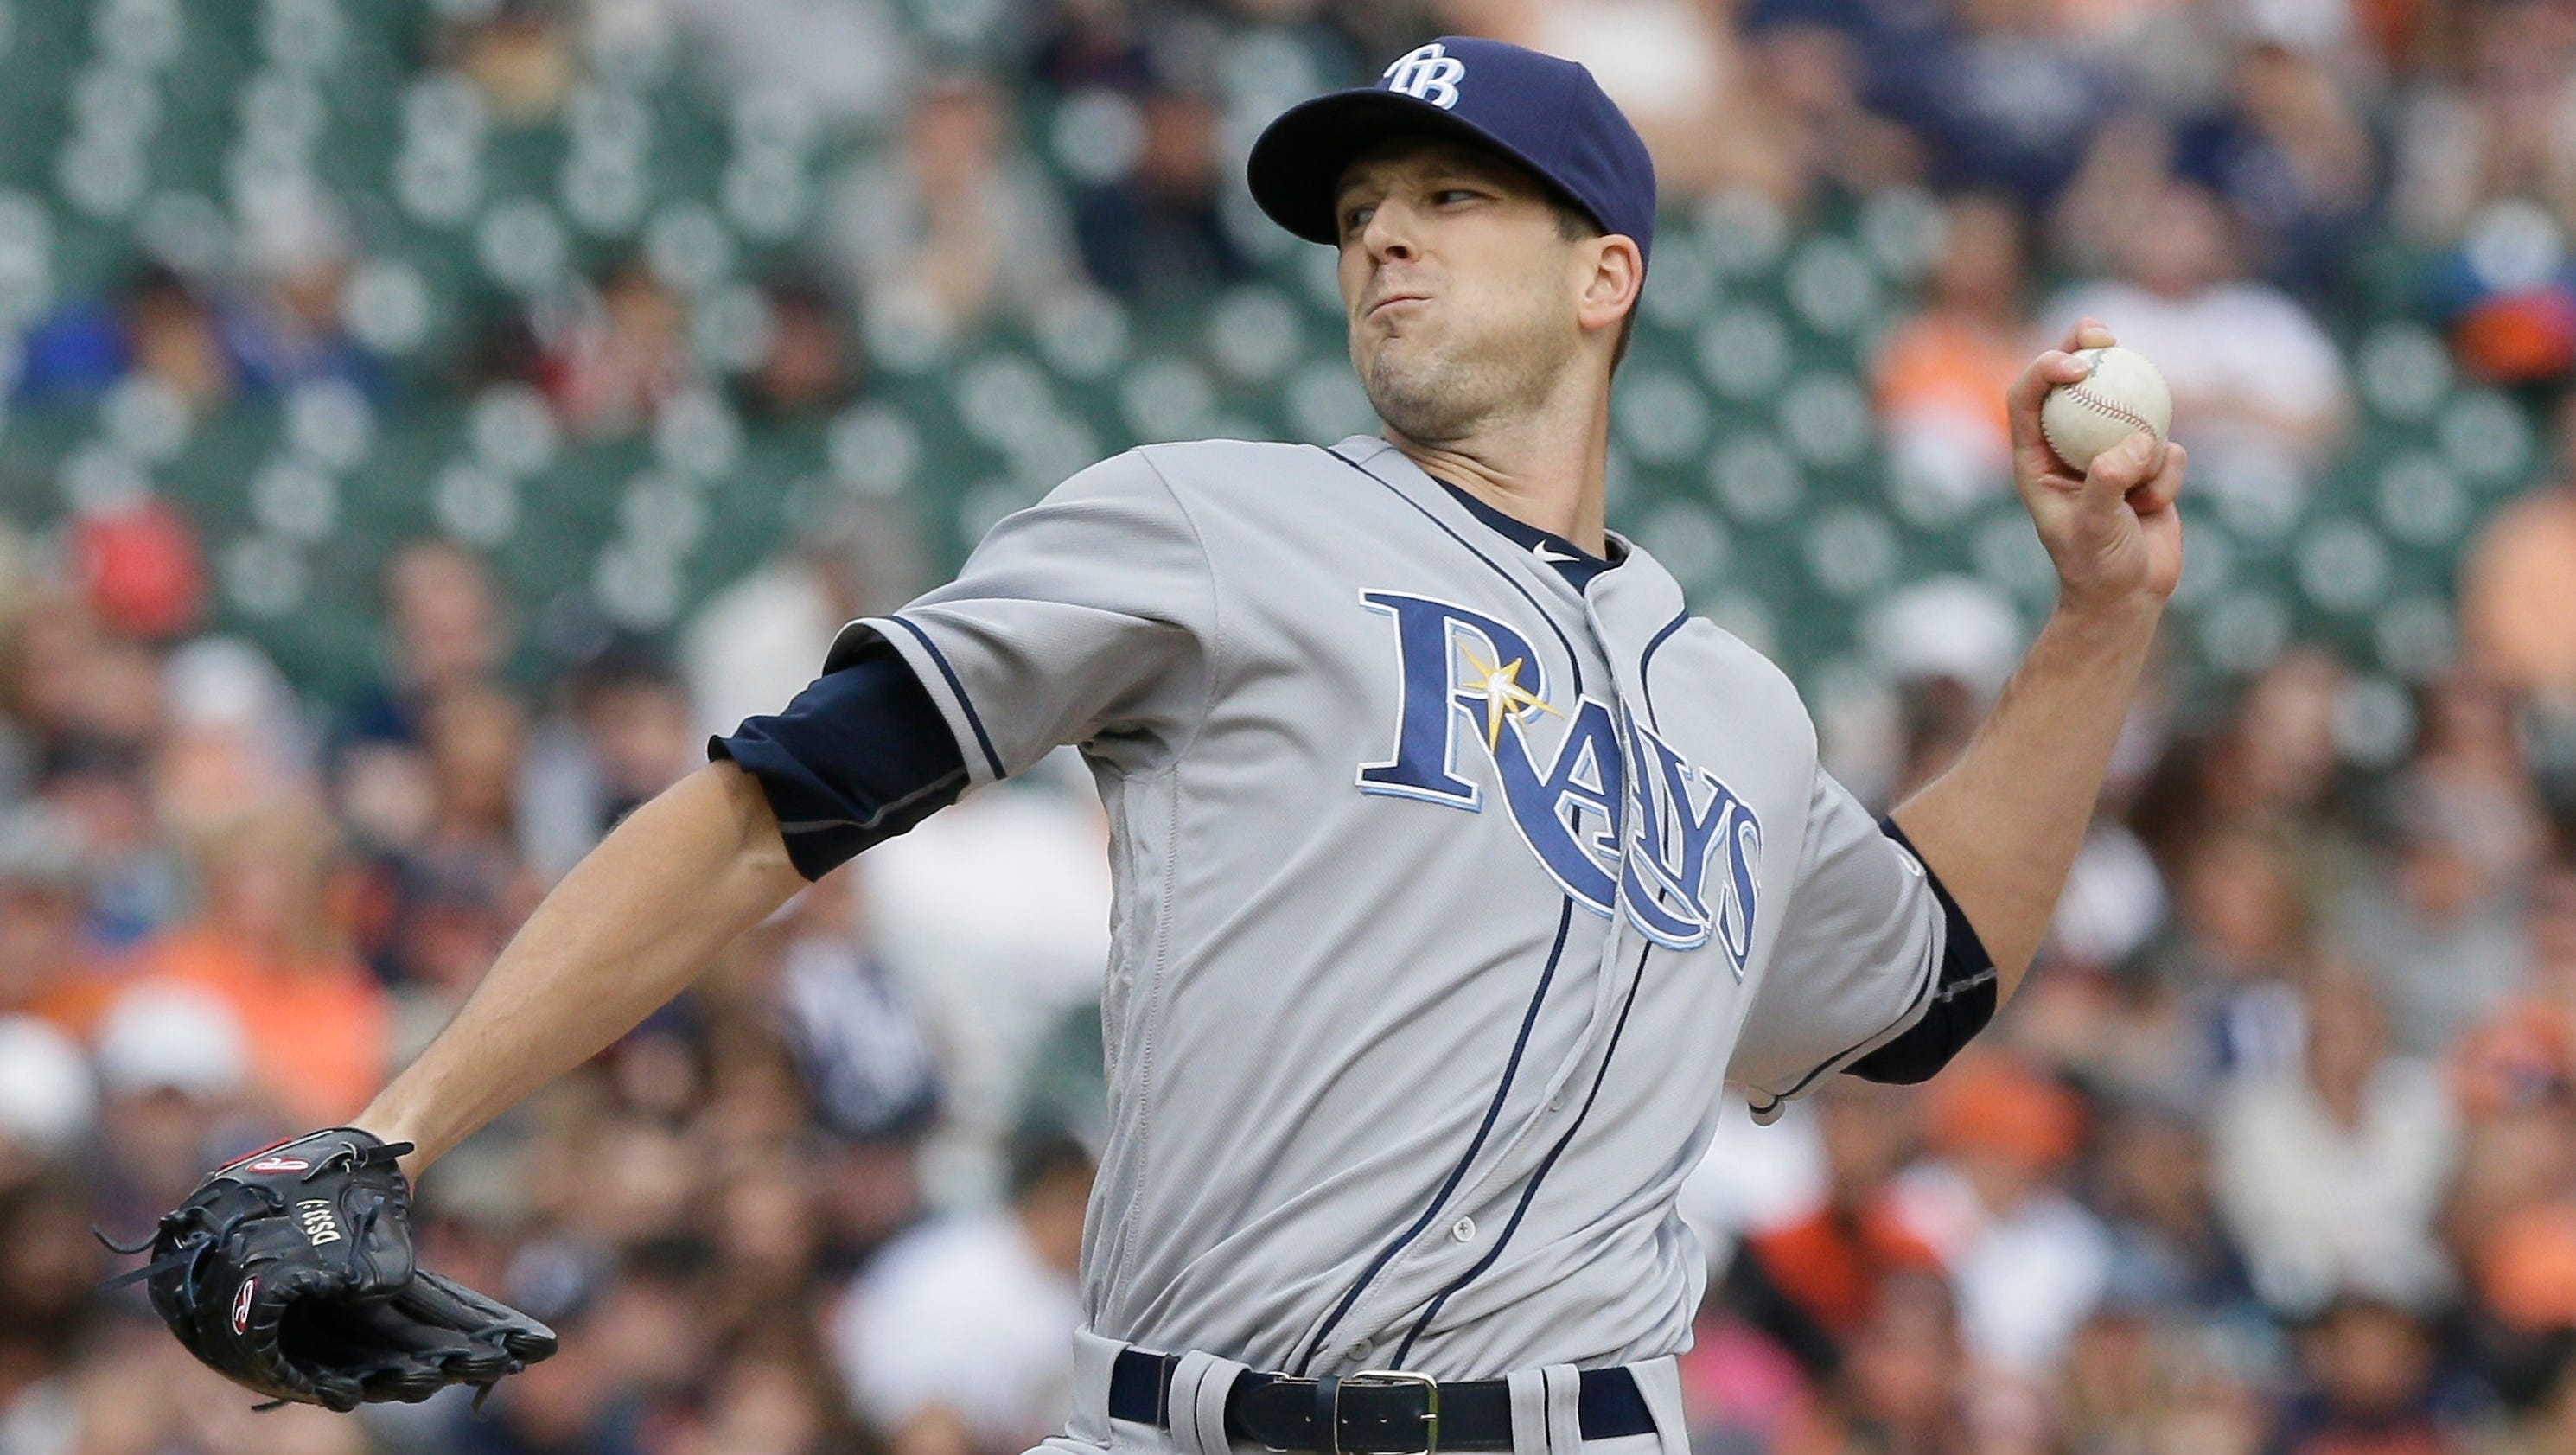 635994520202359775-rays-tigers-baseball-jruss-detnews.com-4